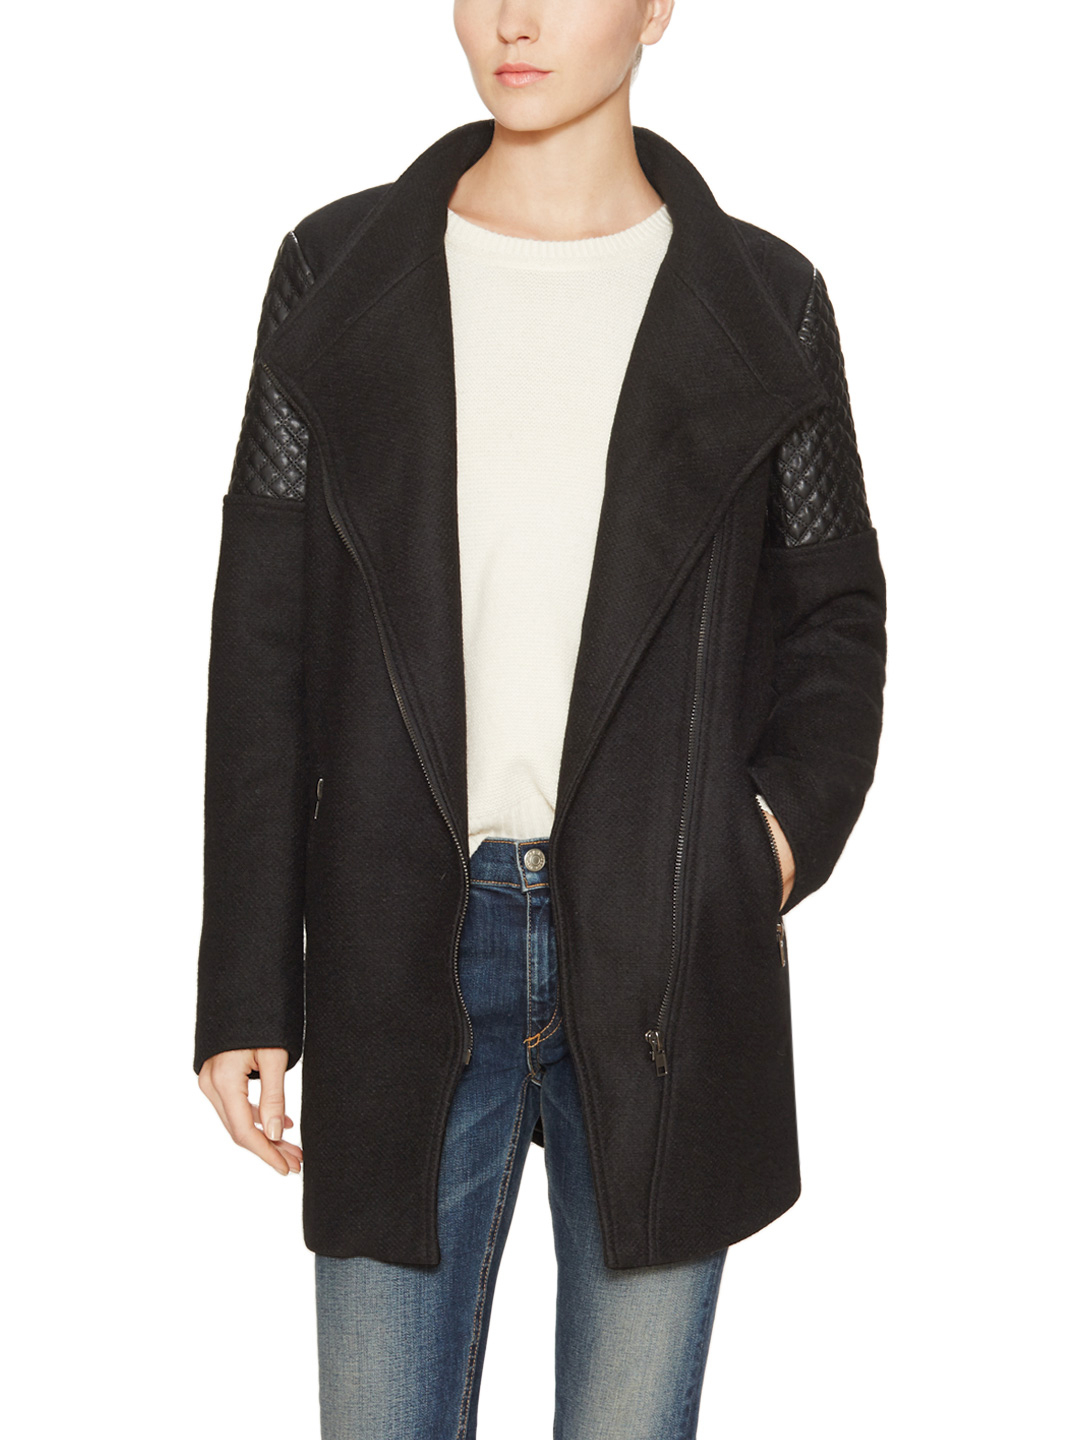 Telly jacket with faux leather quilted panels by heartloom at gilt